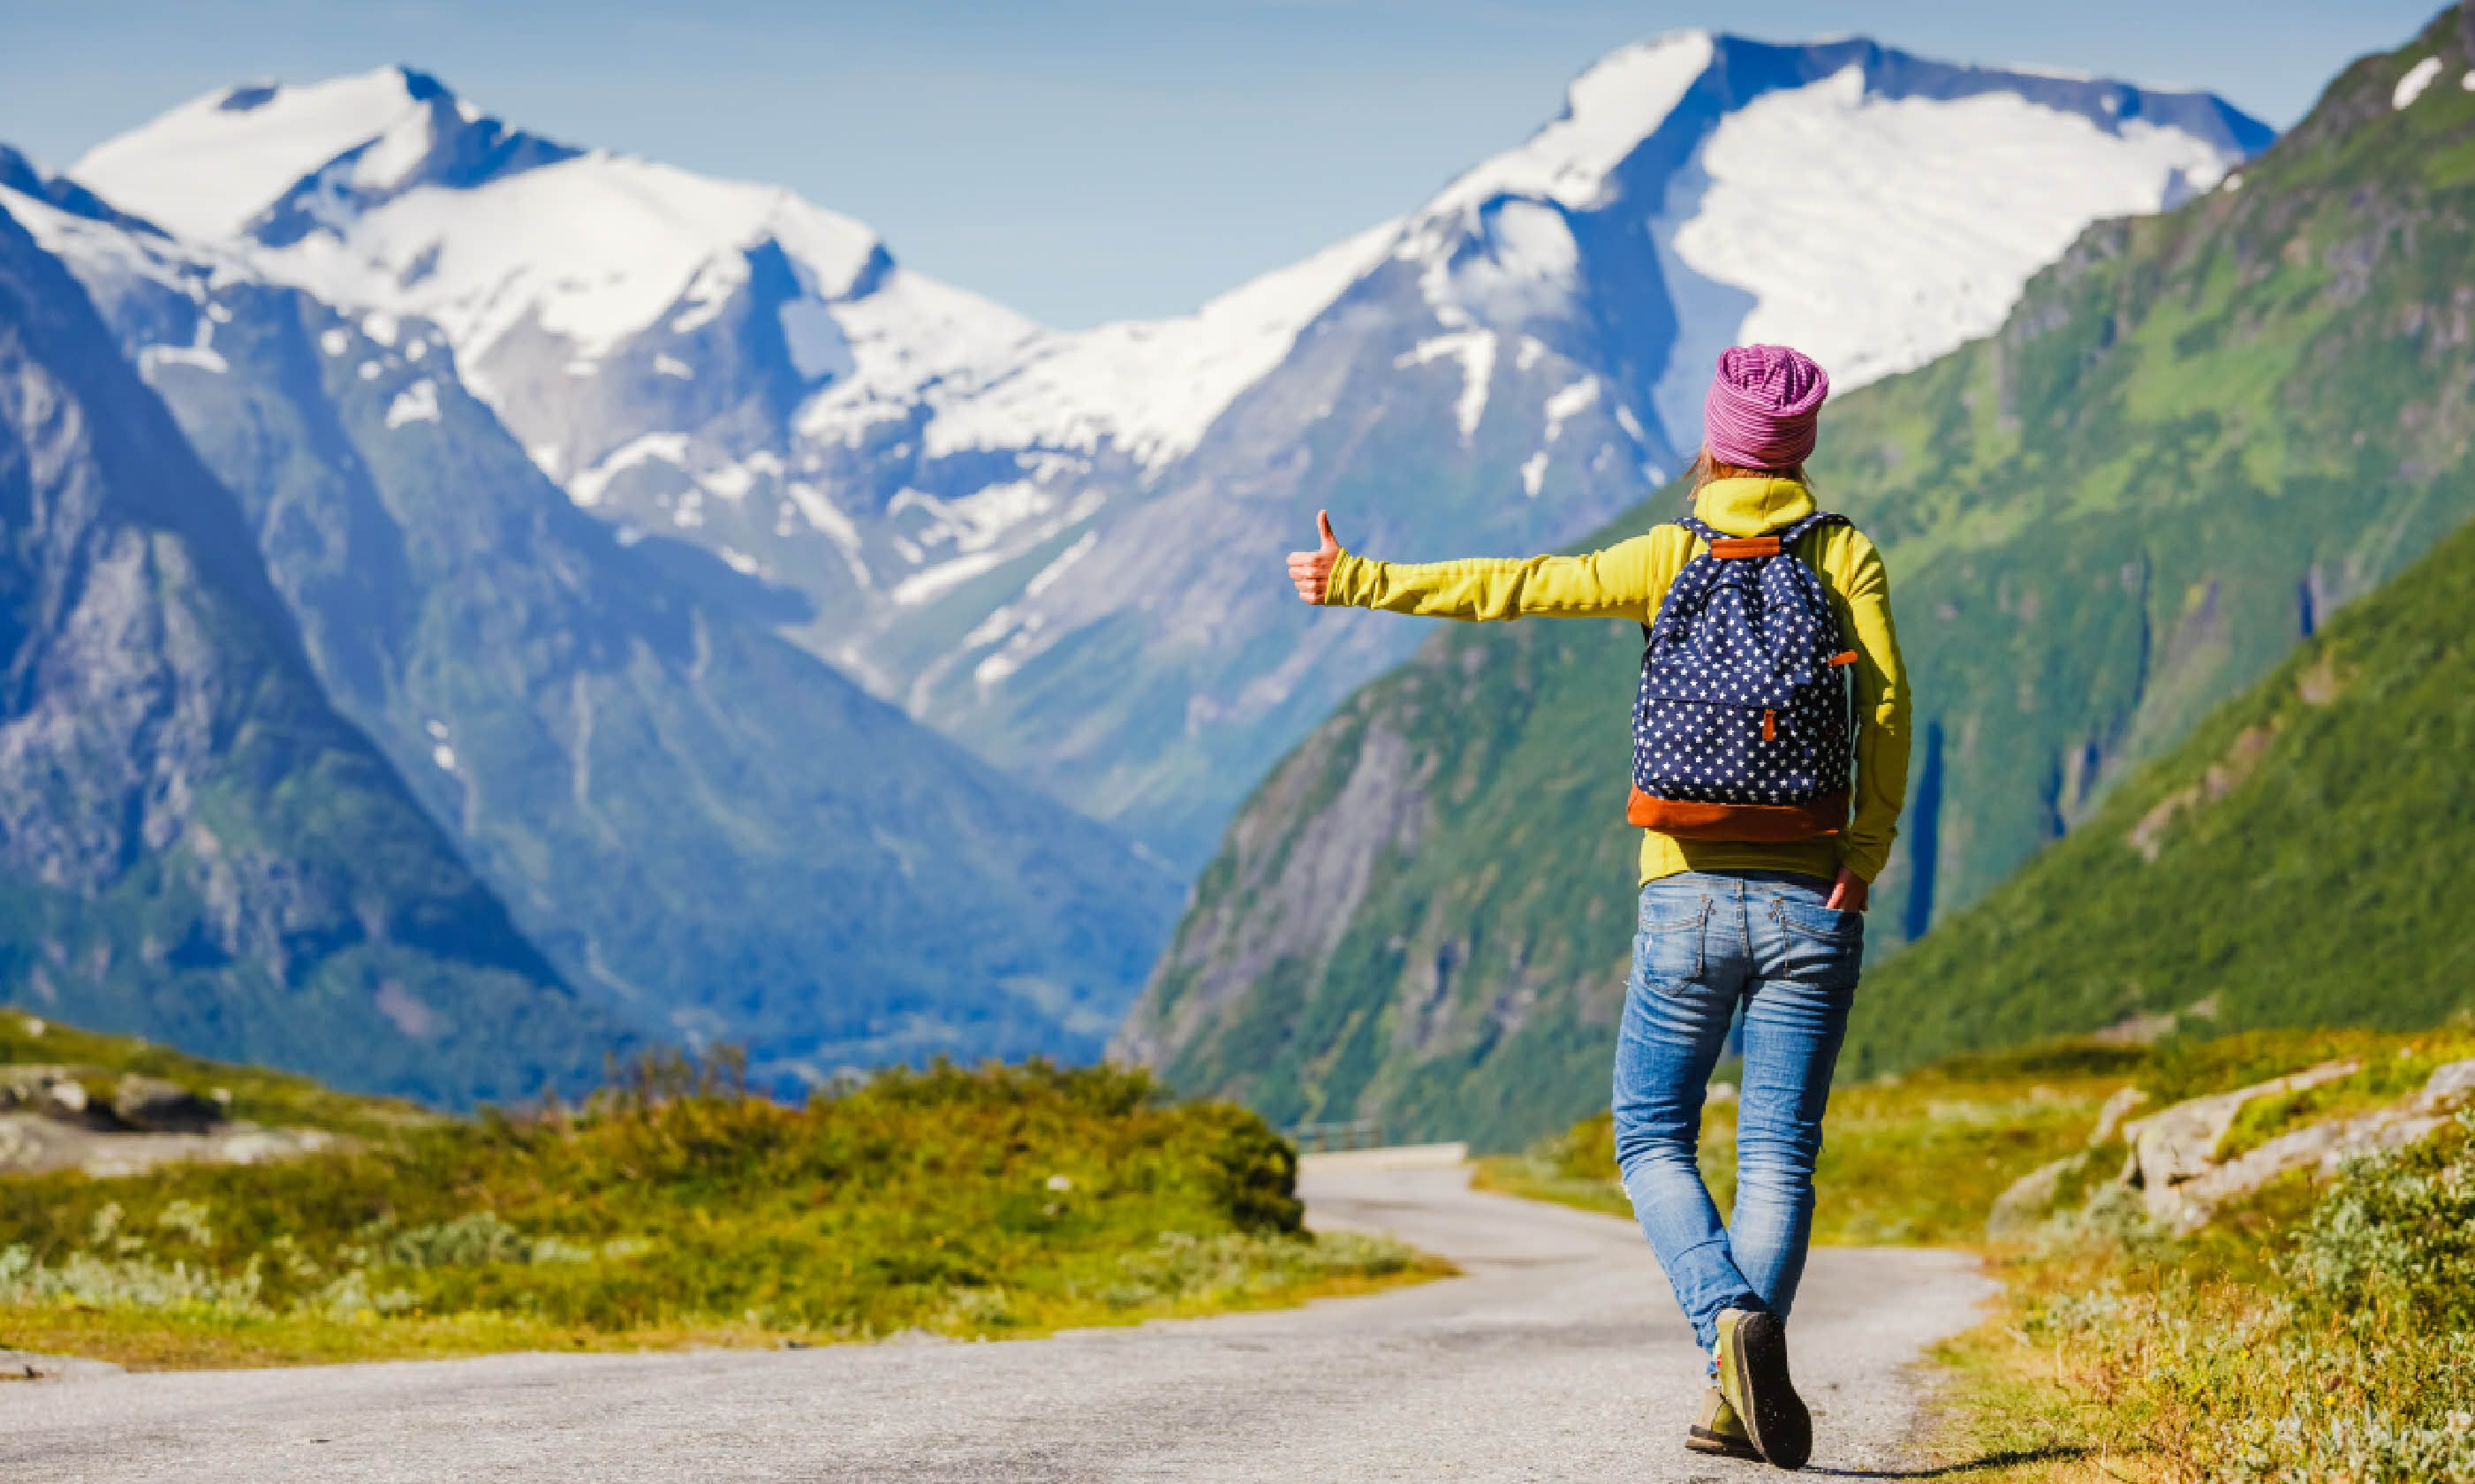 Hitchhiking in the mountains (Shutterstock)